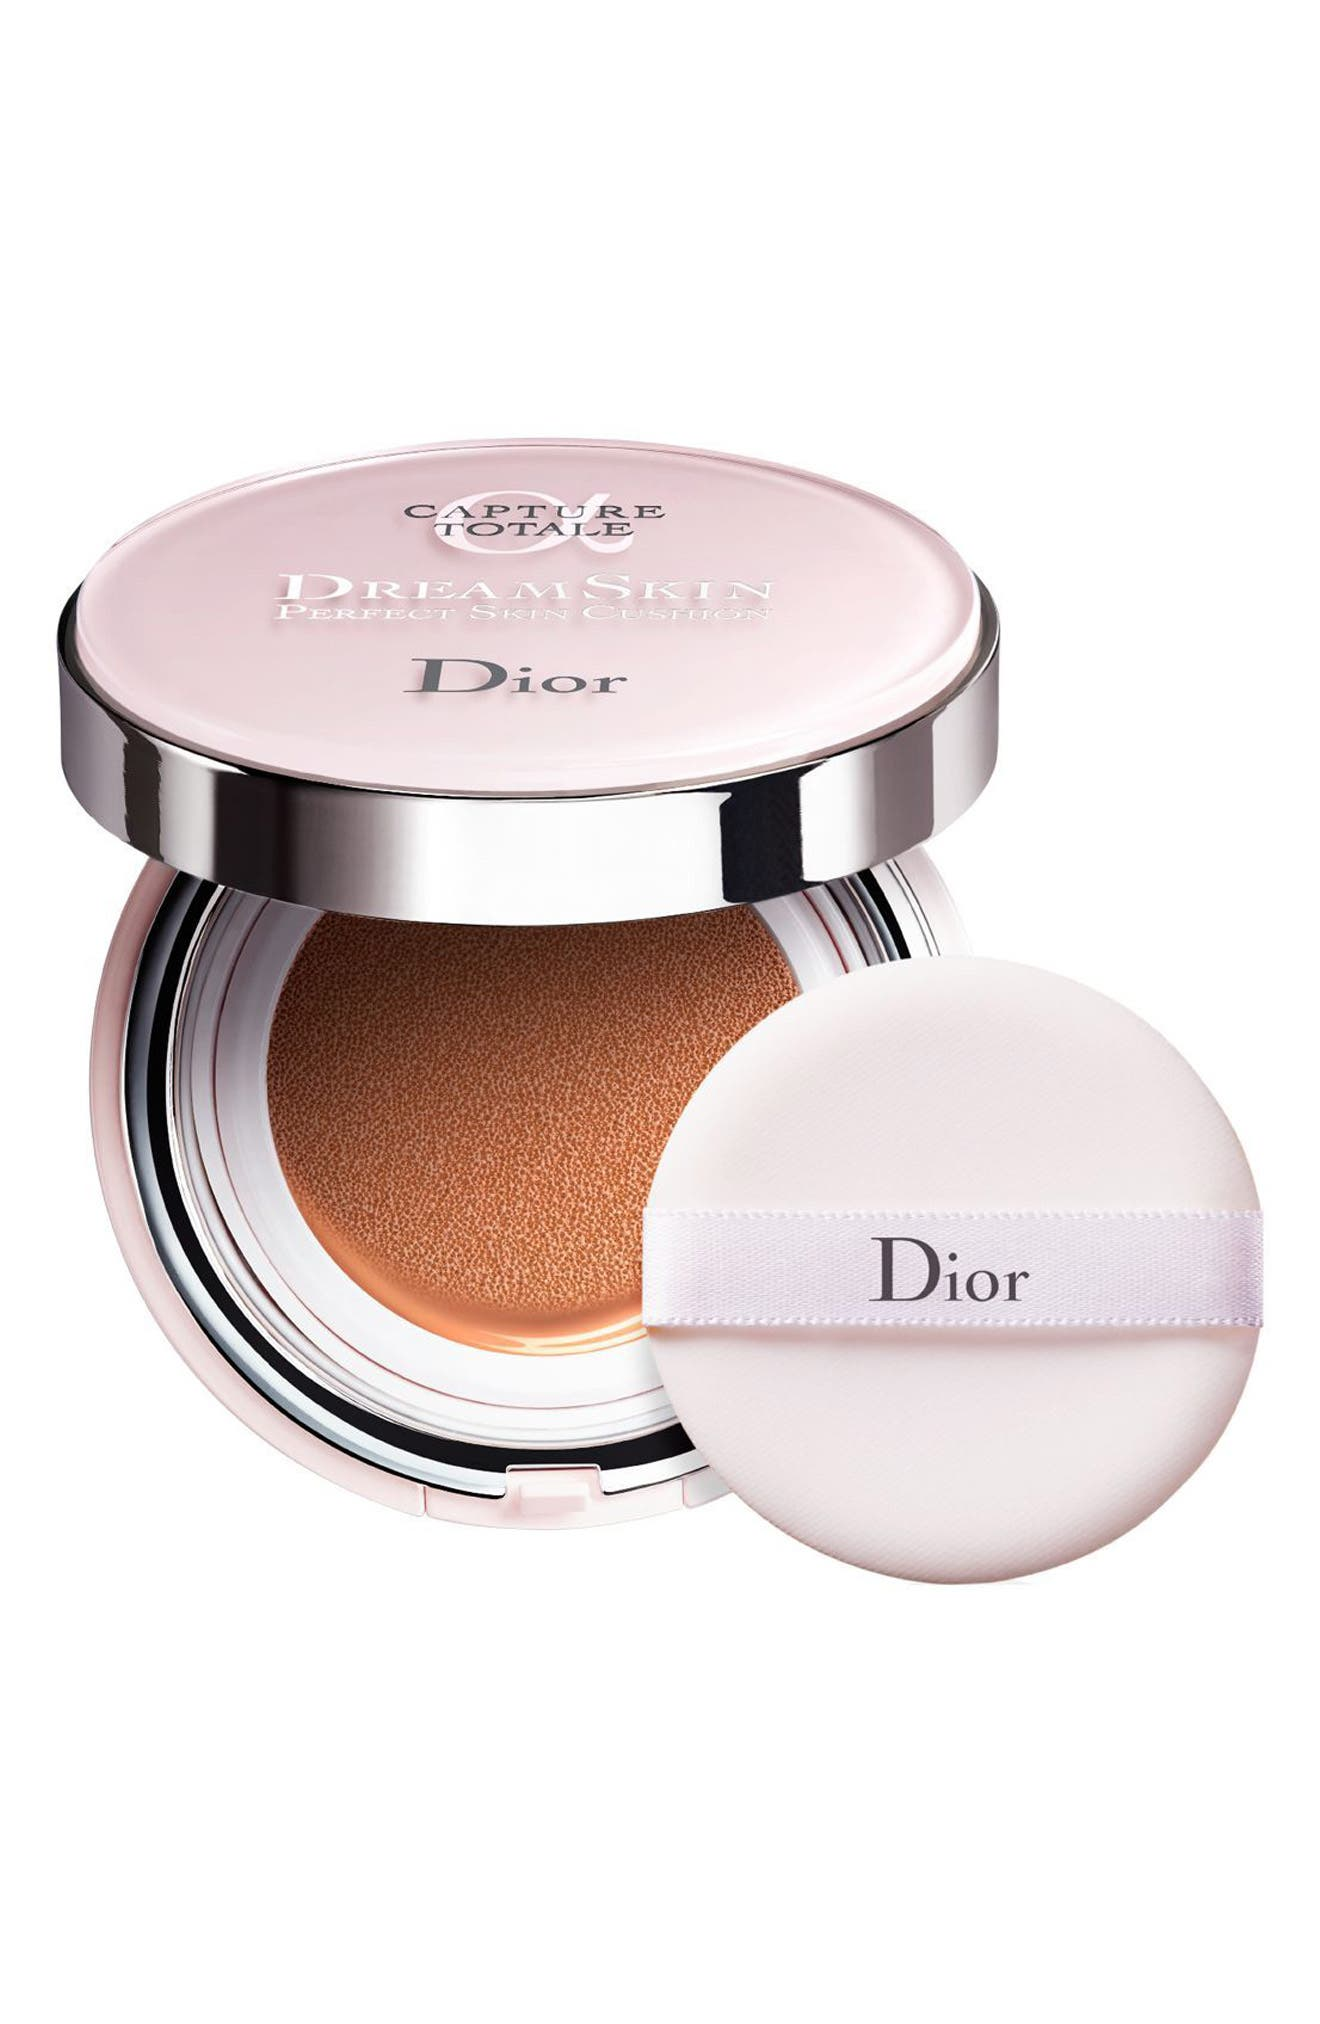 Main Image - Dior Capture Totale Dreamskin Perfect Skin Cushion Broad Spectrum SPF 50